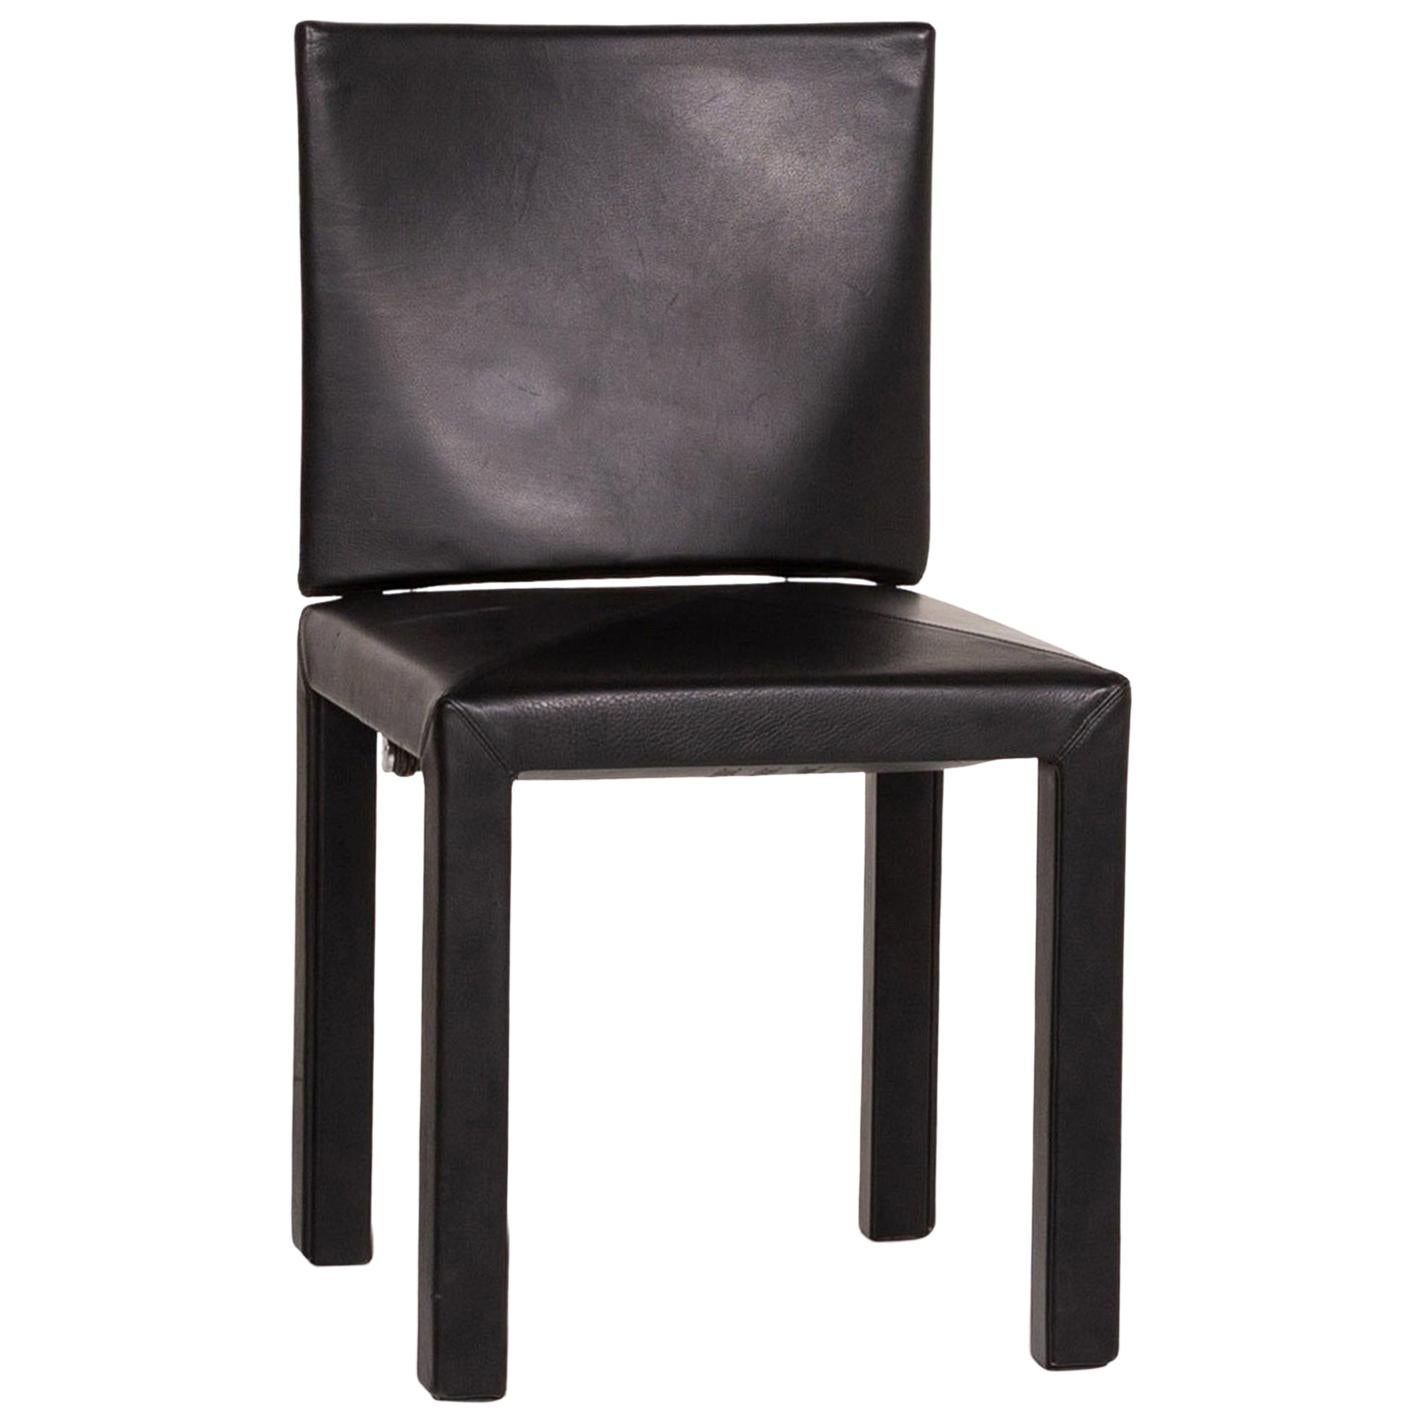 B&B Italia Leather Chair Black